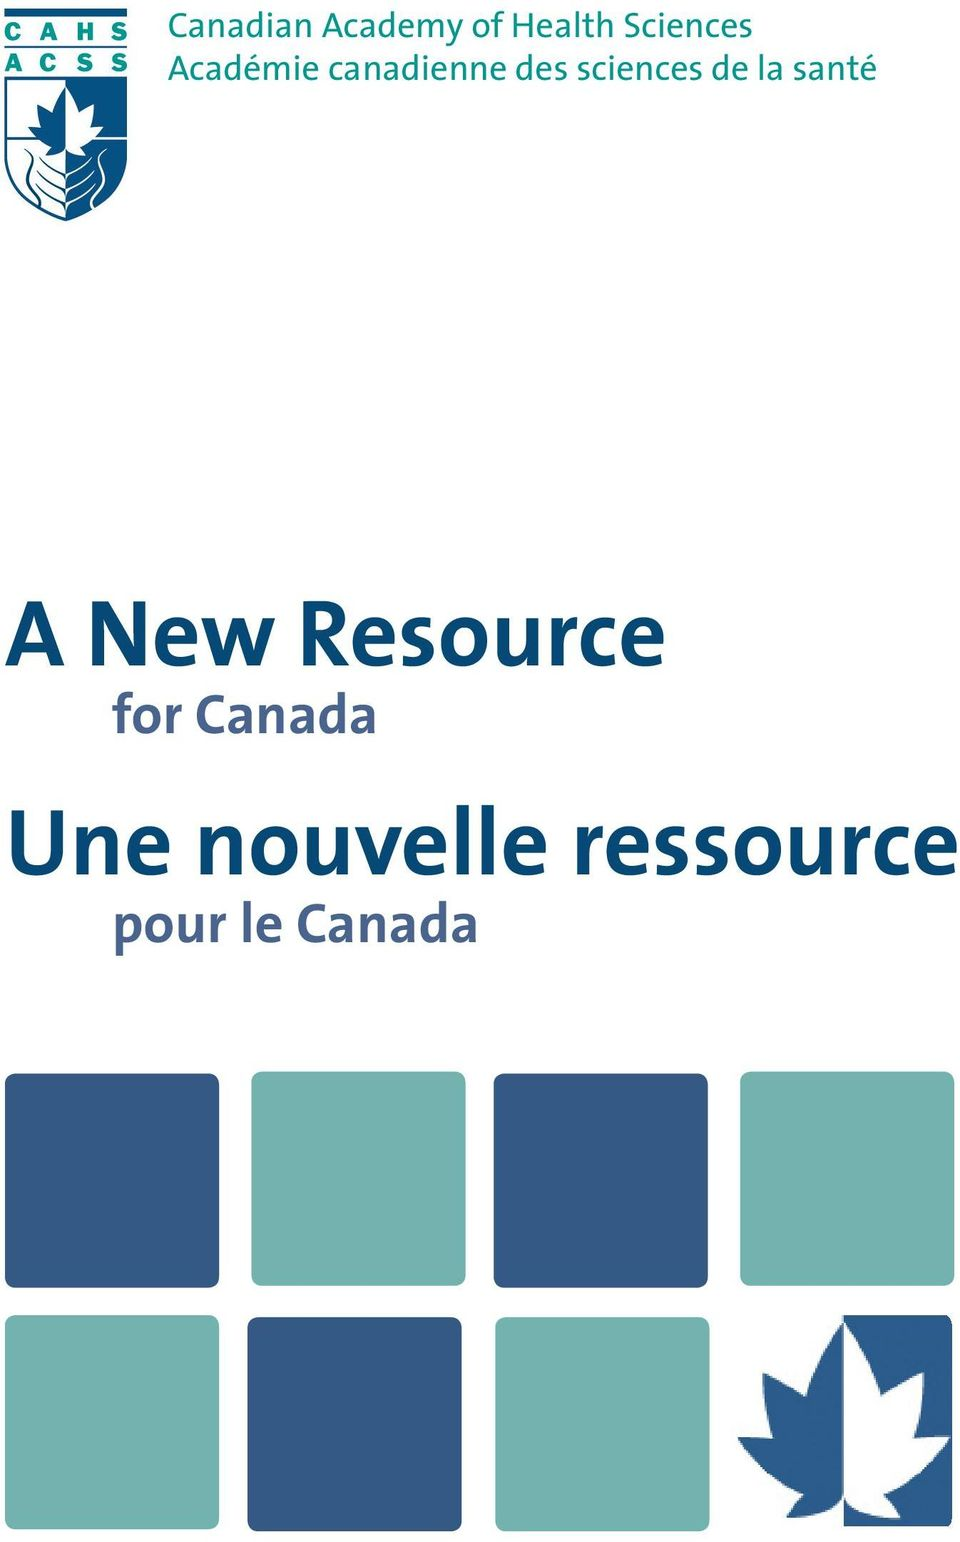 la santé A New Resource for Canada